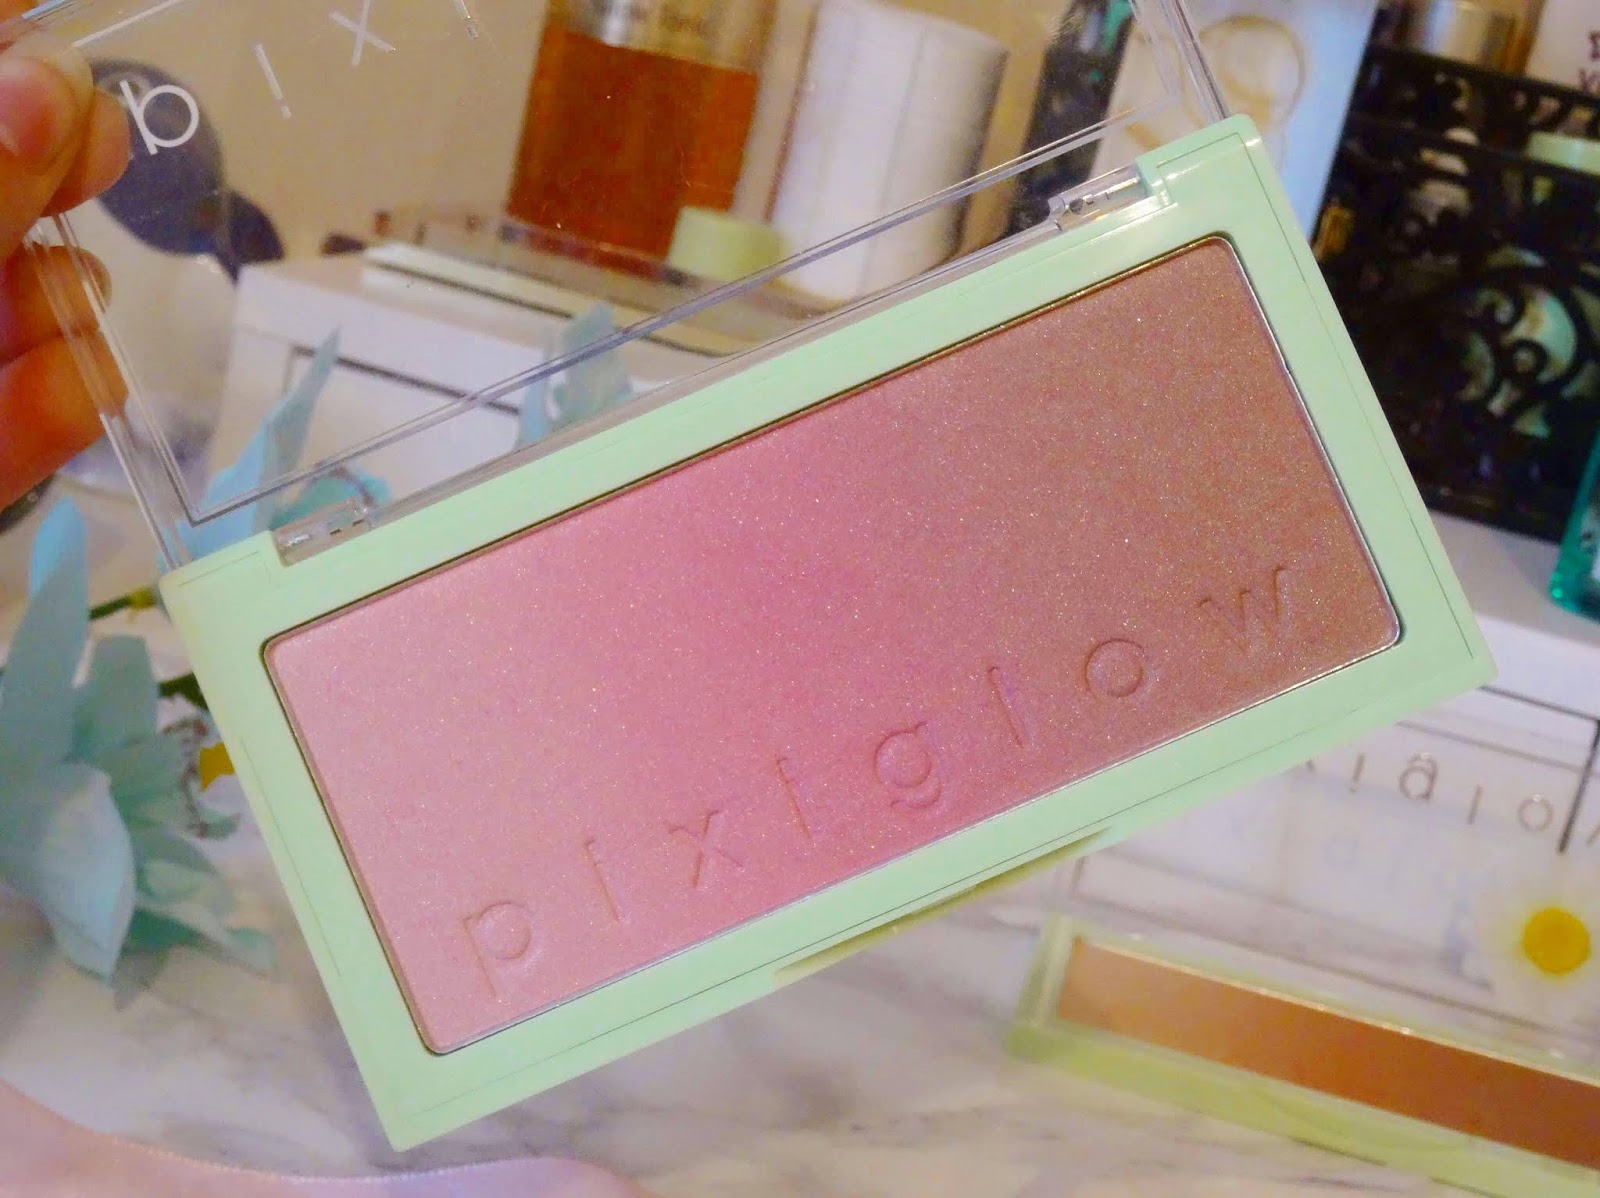 Pixi Glow Cakes in Pink Champagne Glow Review